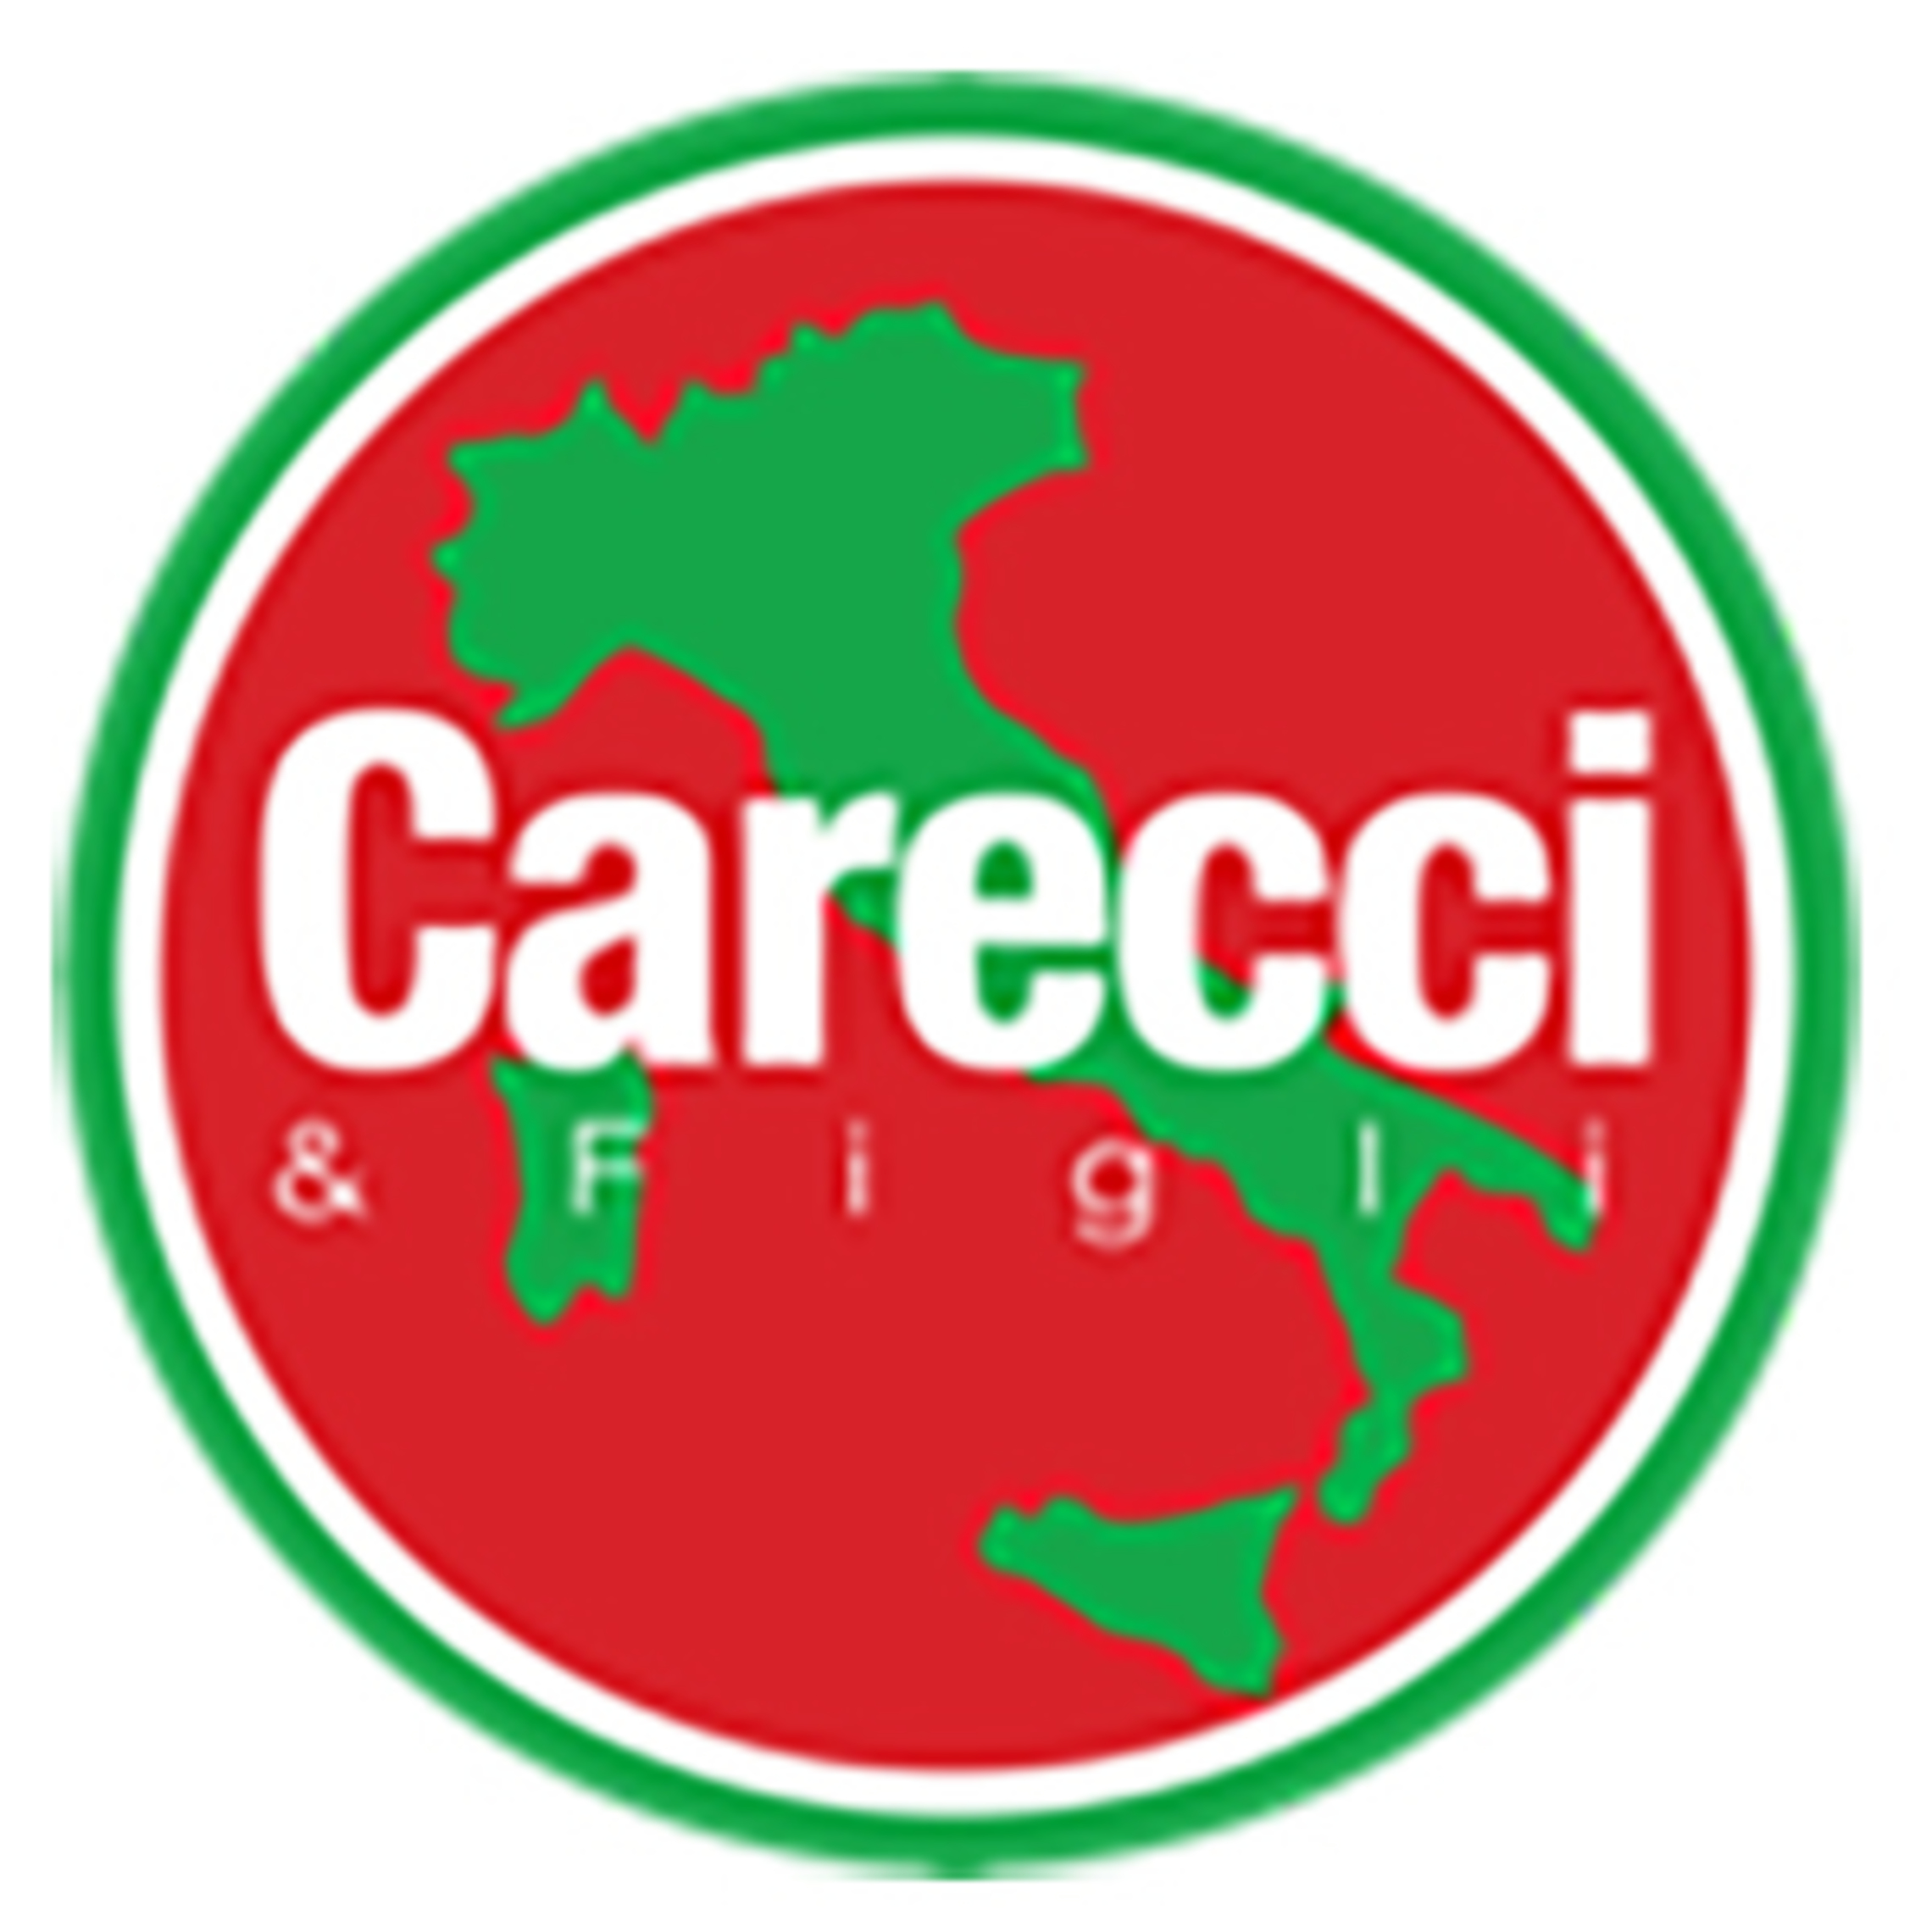 carecci and figli- company logo